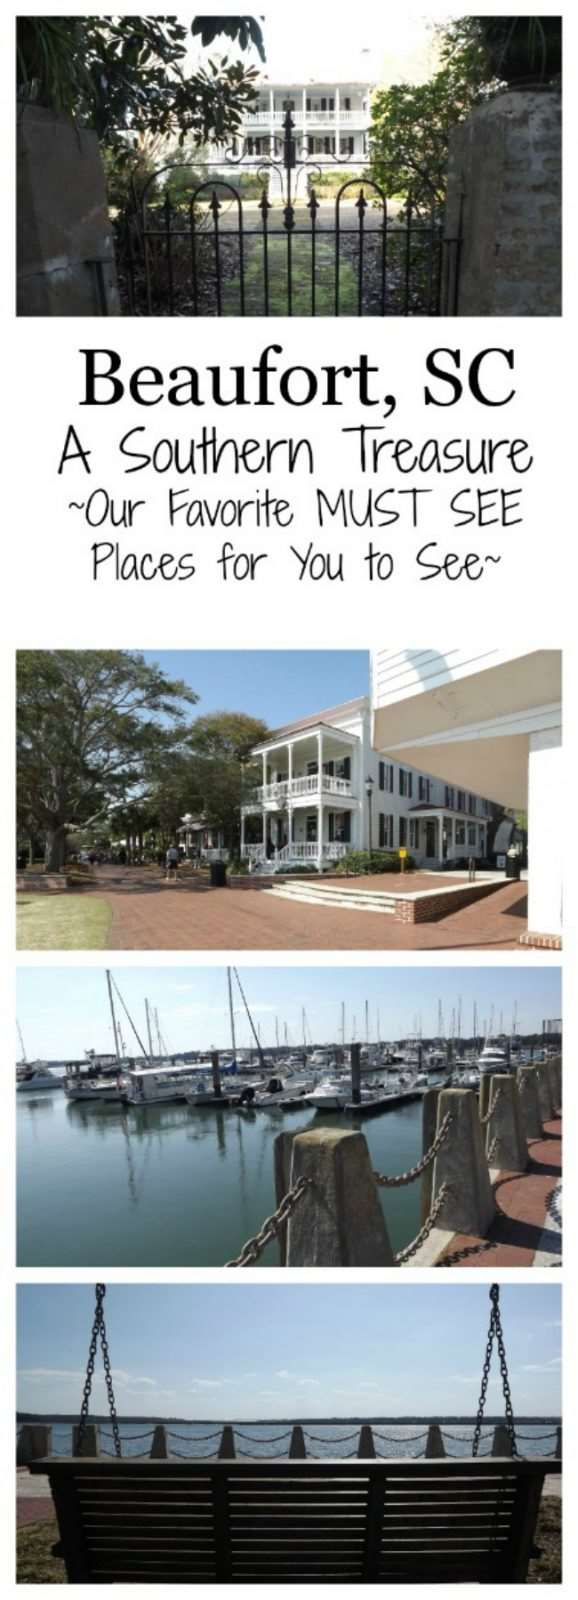 Beaufort, SC: A Southern Treasure - A great family friendly vacation spot in coastal South Carolina #coastalliving #familytravel #travel #southcarolina #familyfun